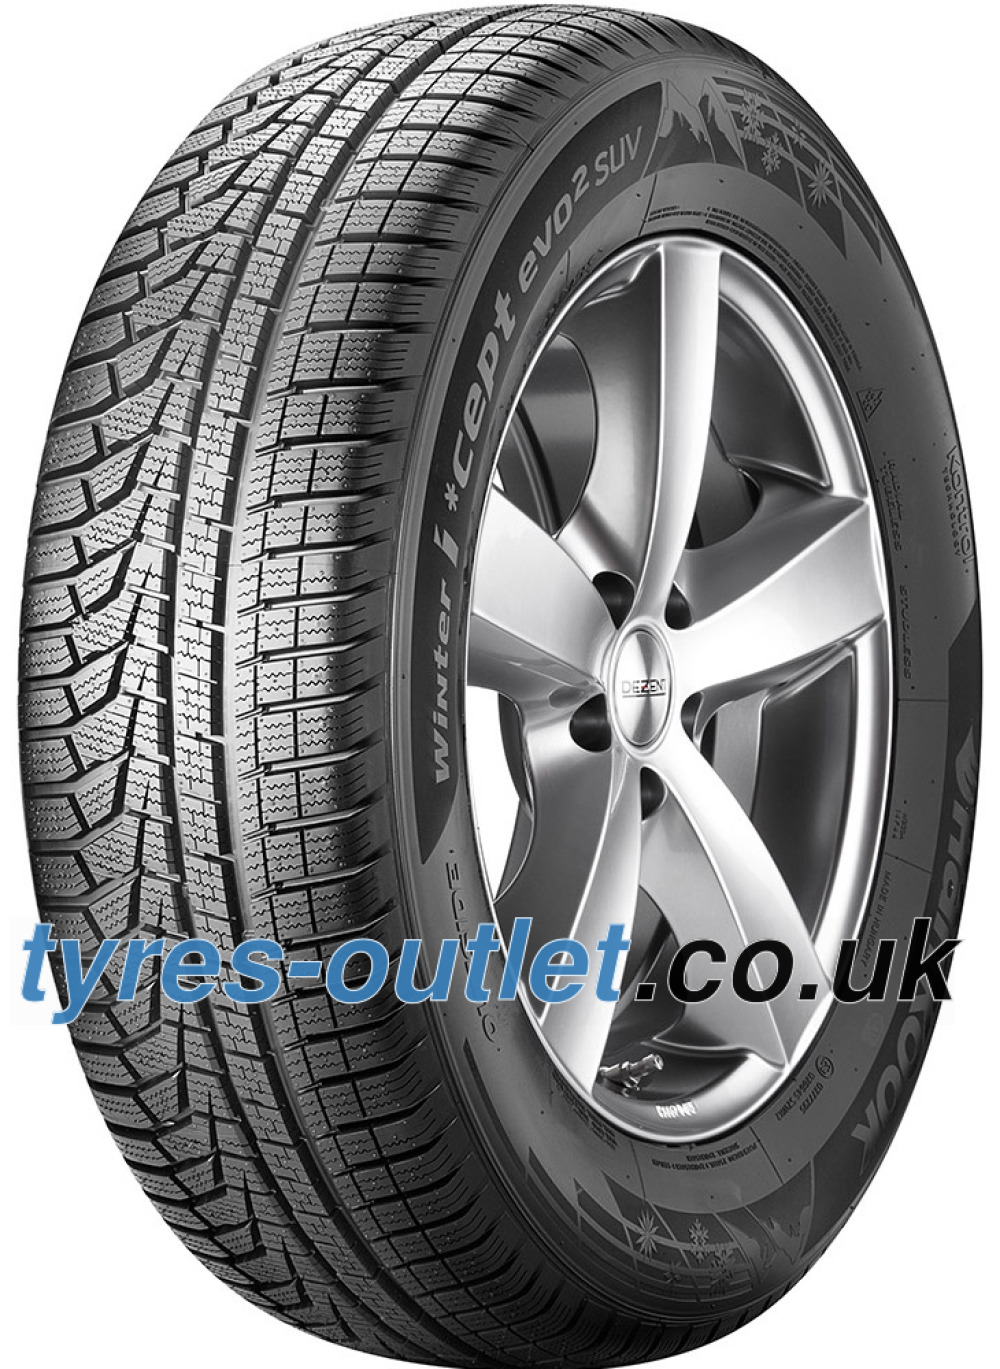 Hankook i*cept evo² (W320A) ( 235/55 R19 105V XL , with rim protection (MFS) SBL )